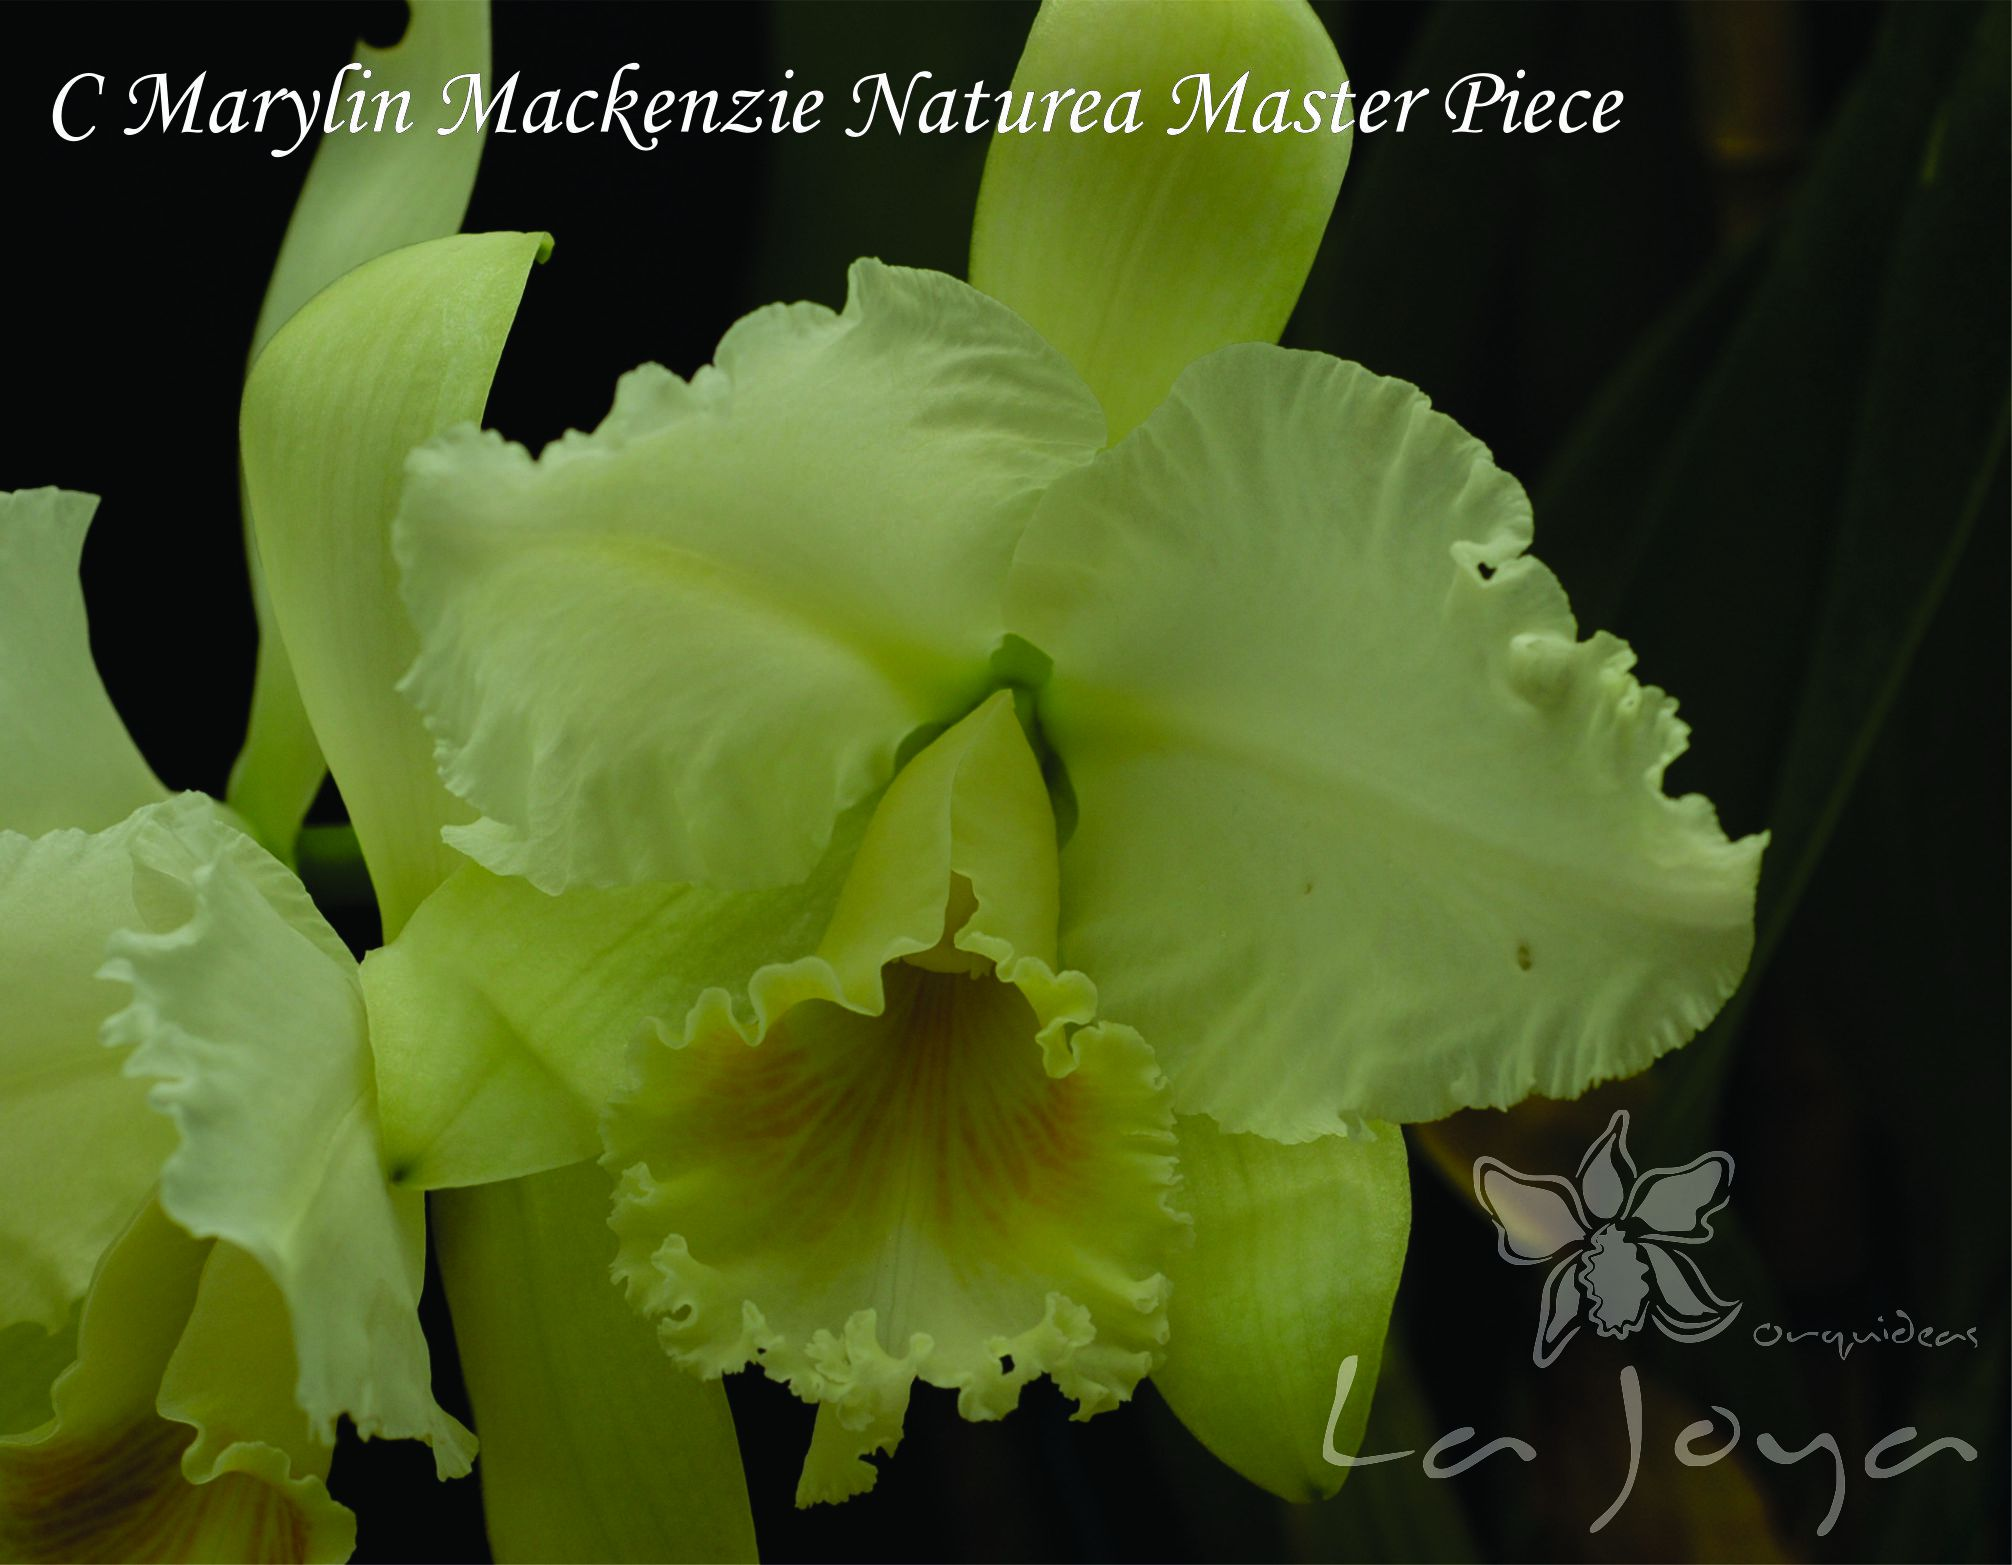 Marylin Mackenzie Naturea Master Piece